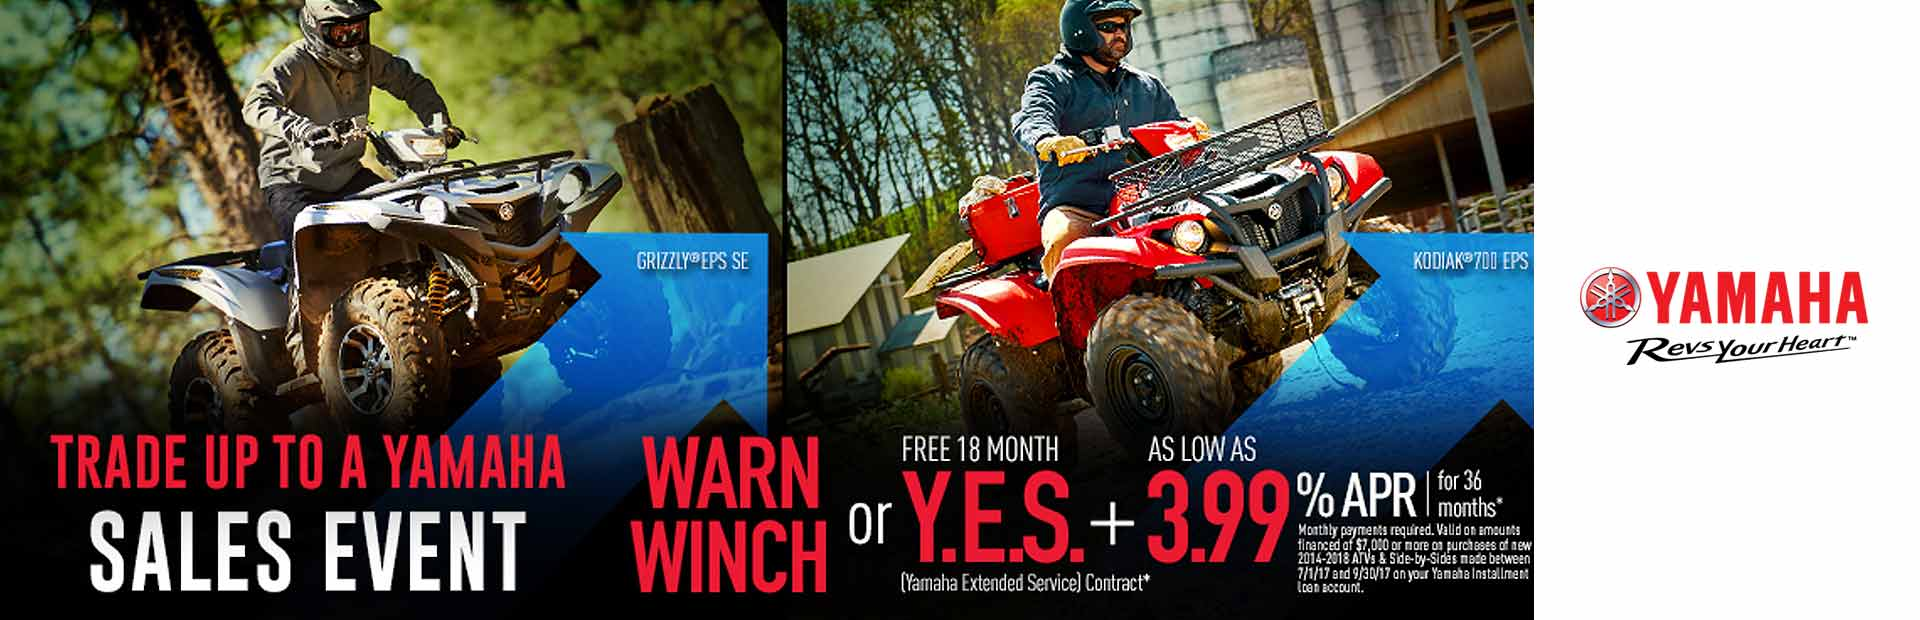 Yamaha: Warn Winch or Y.E.S. + 3.99% APR For 36 Months*